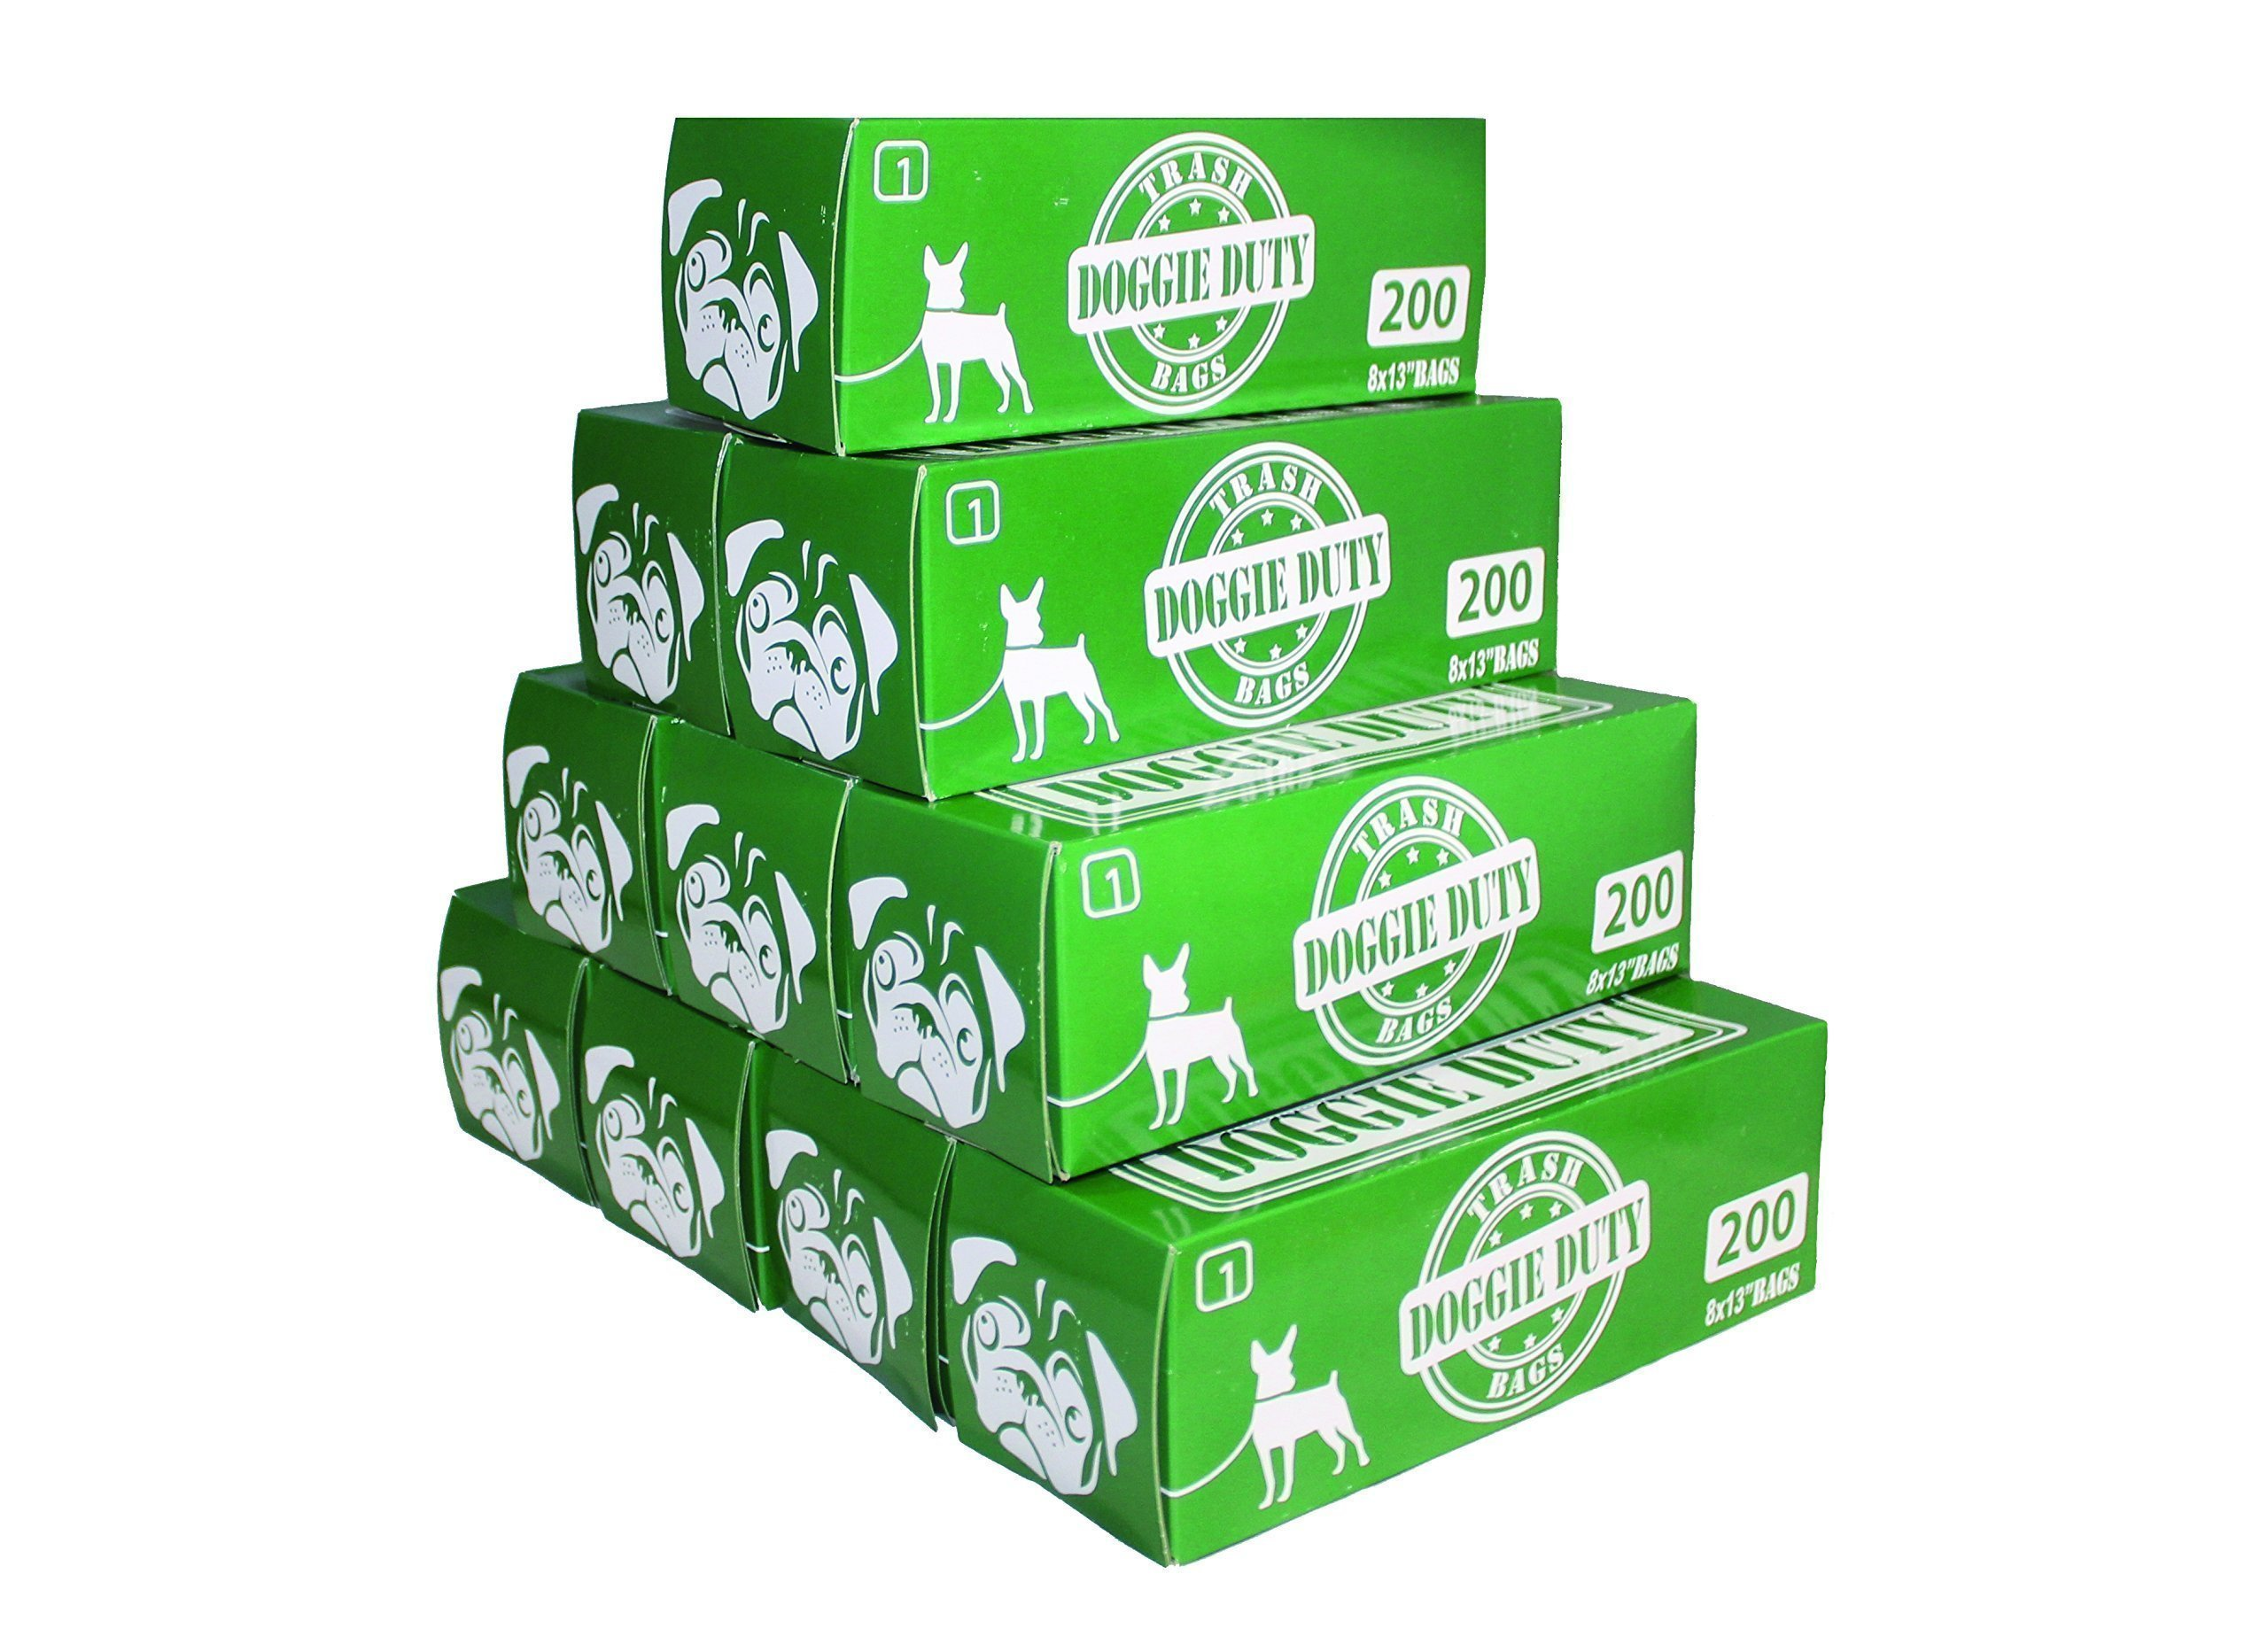 10 refill boxes of 200 bags each box 2,000 total Pet Waste Bags- Doggie Duty Trash Bags Case - Dog pick up bags, Puppy litter bag, Dog poop bags